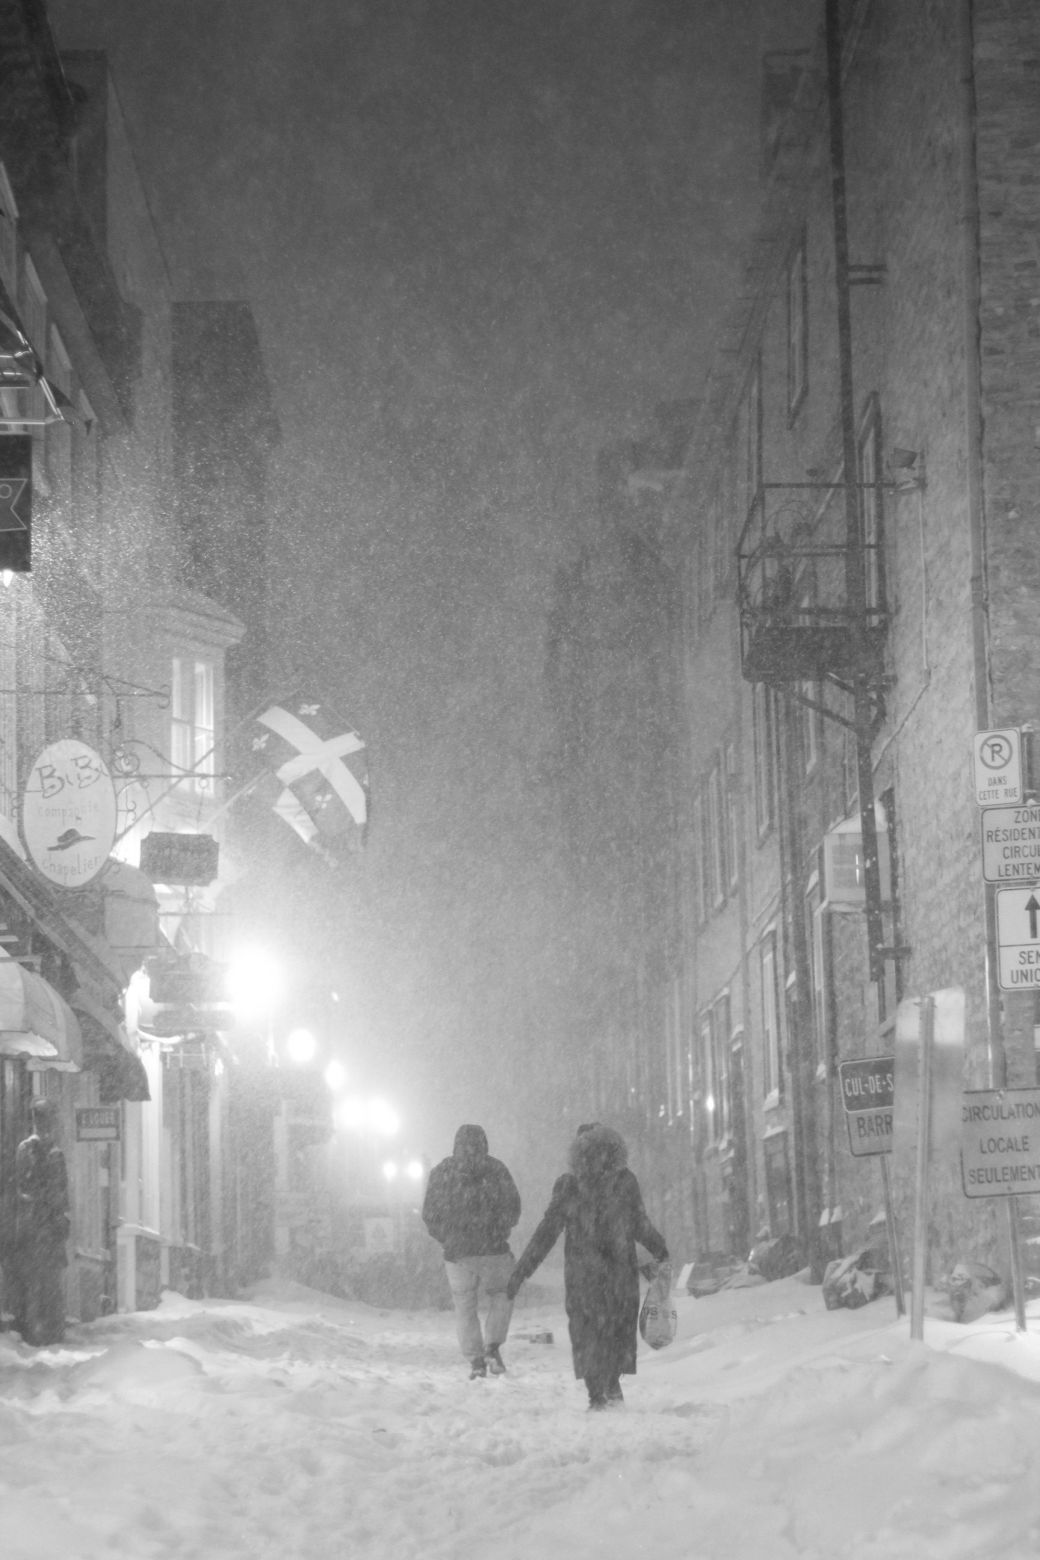 quebec quebec city snow storm december 29 2015 12